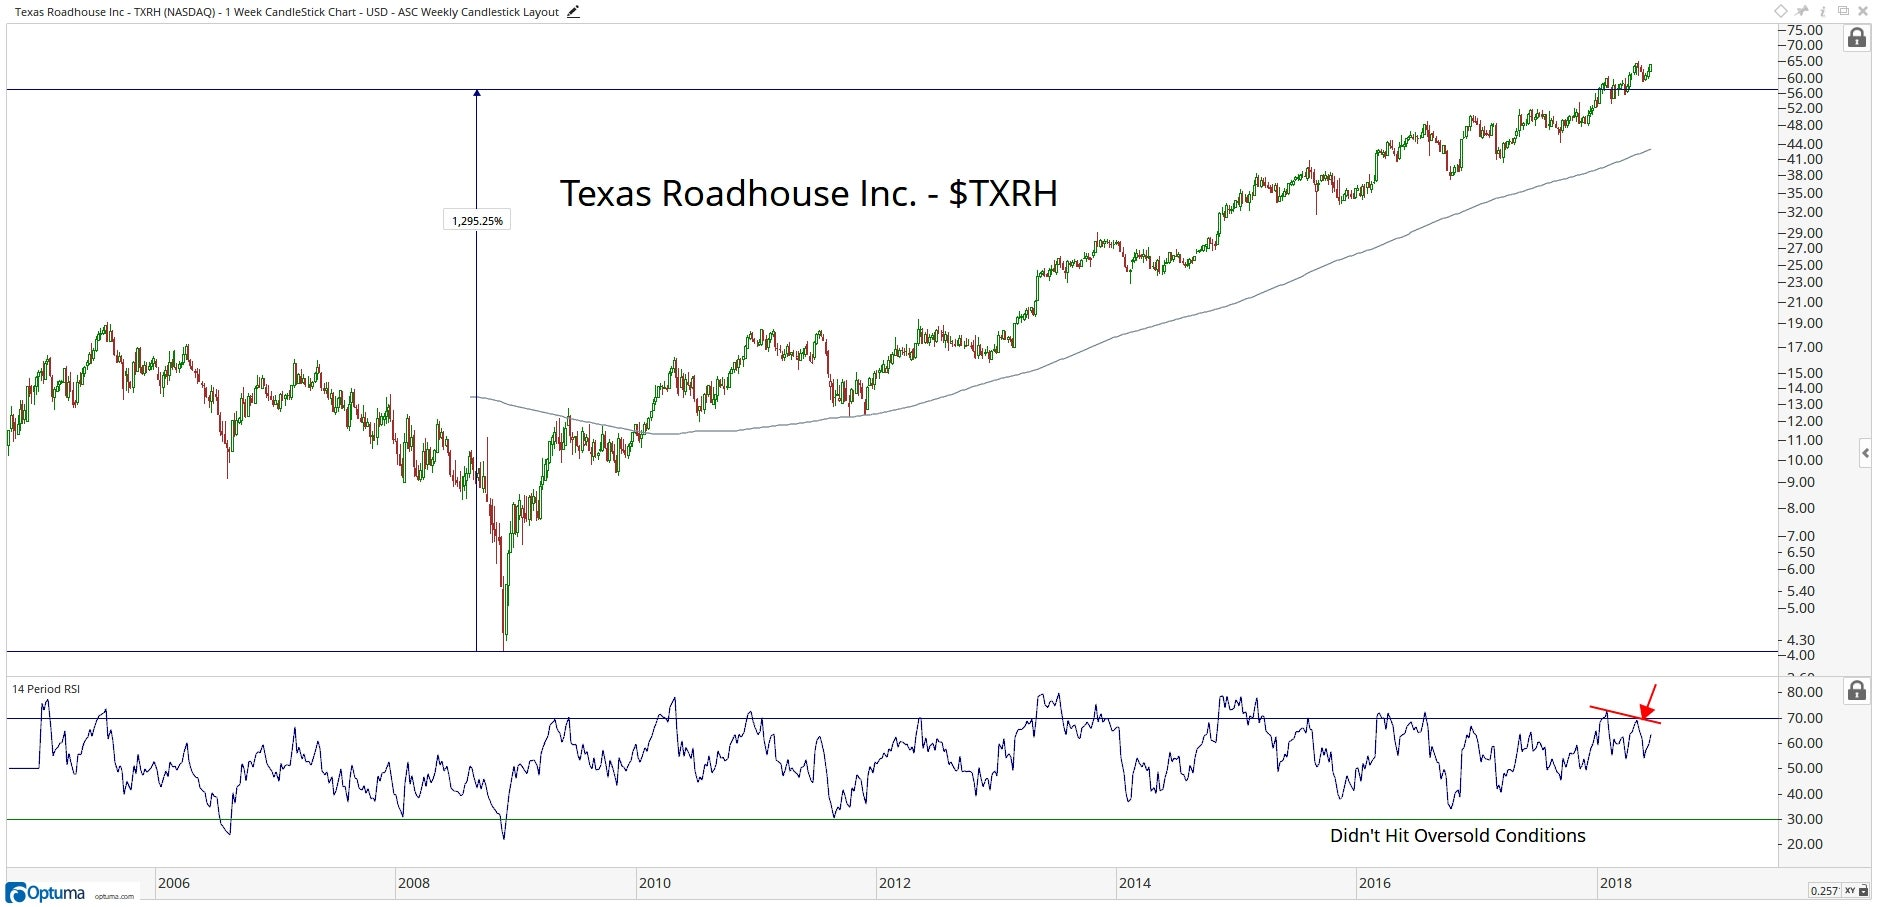 Technical chart showing the performance of Texas Roadhouse, Inc. (TXRH) stock